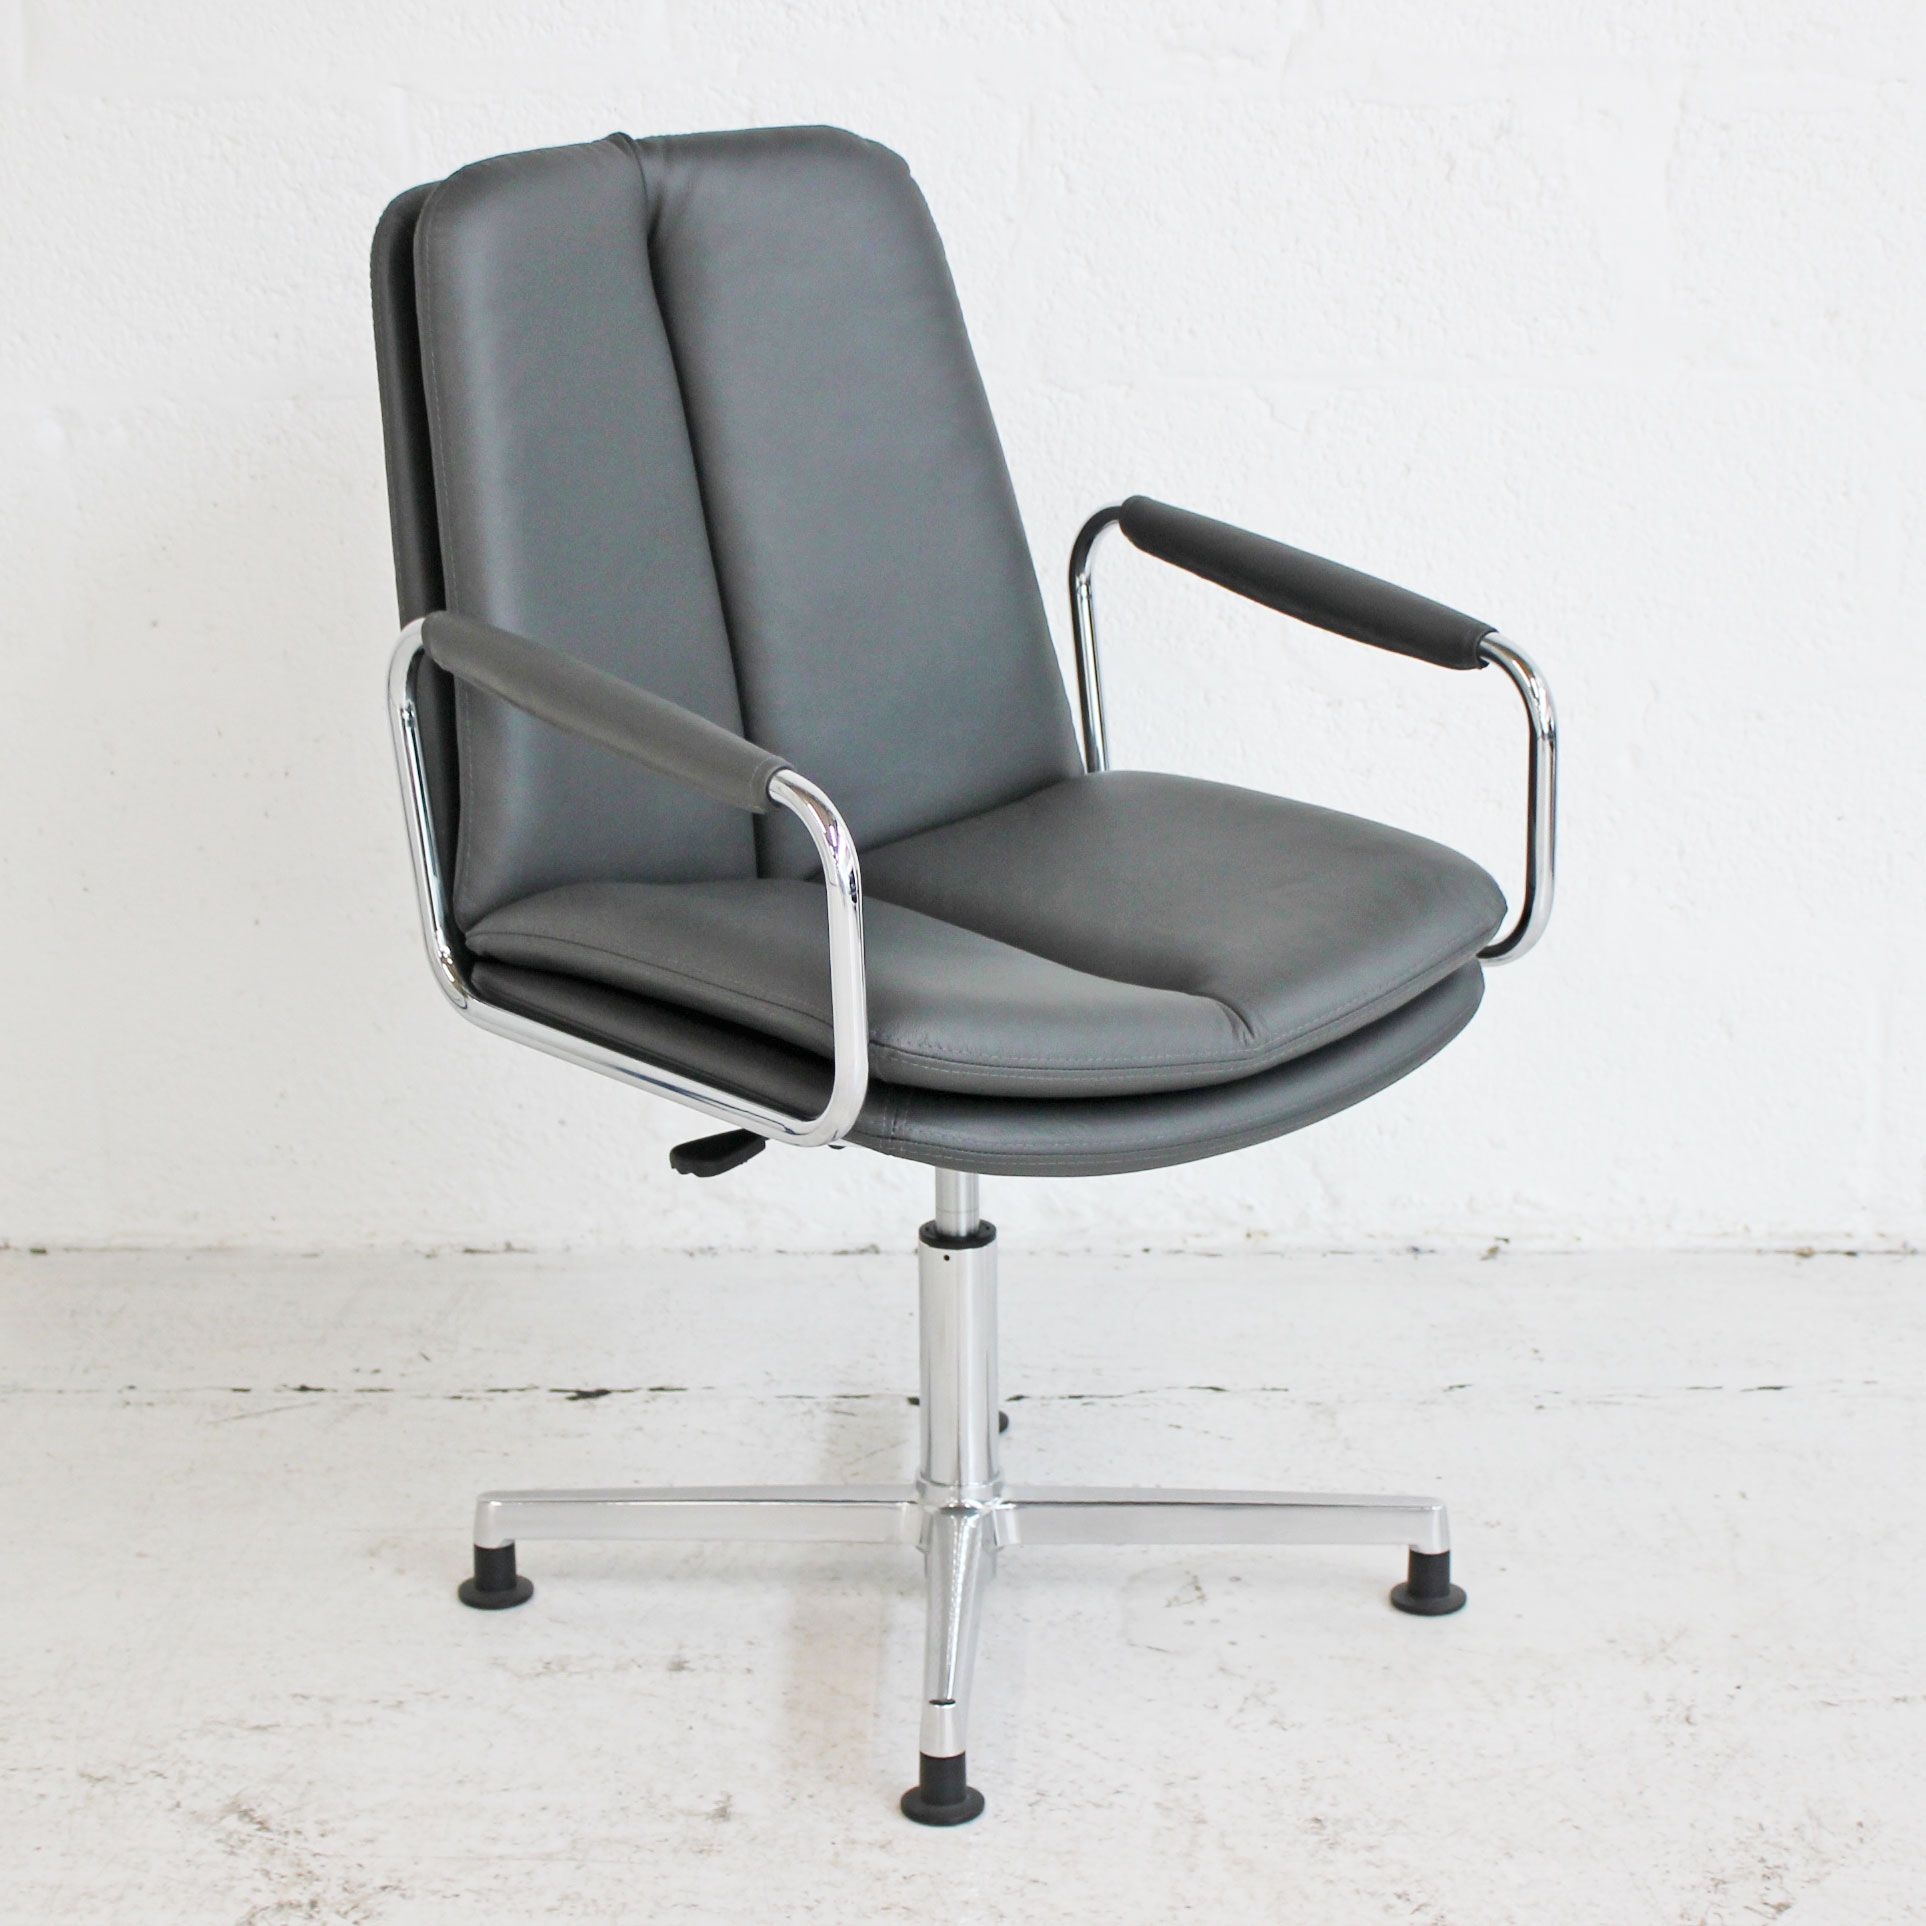 Incredible Sven Ele Conference Chair Ibusinesslaw Wood Chair Design Ideas Ibusinesslaworg